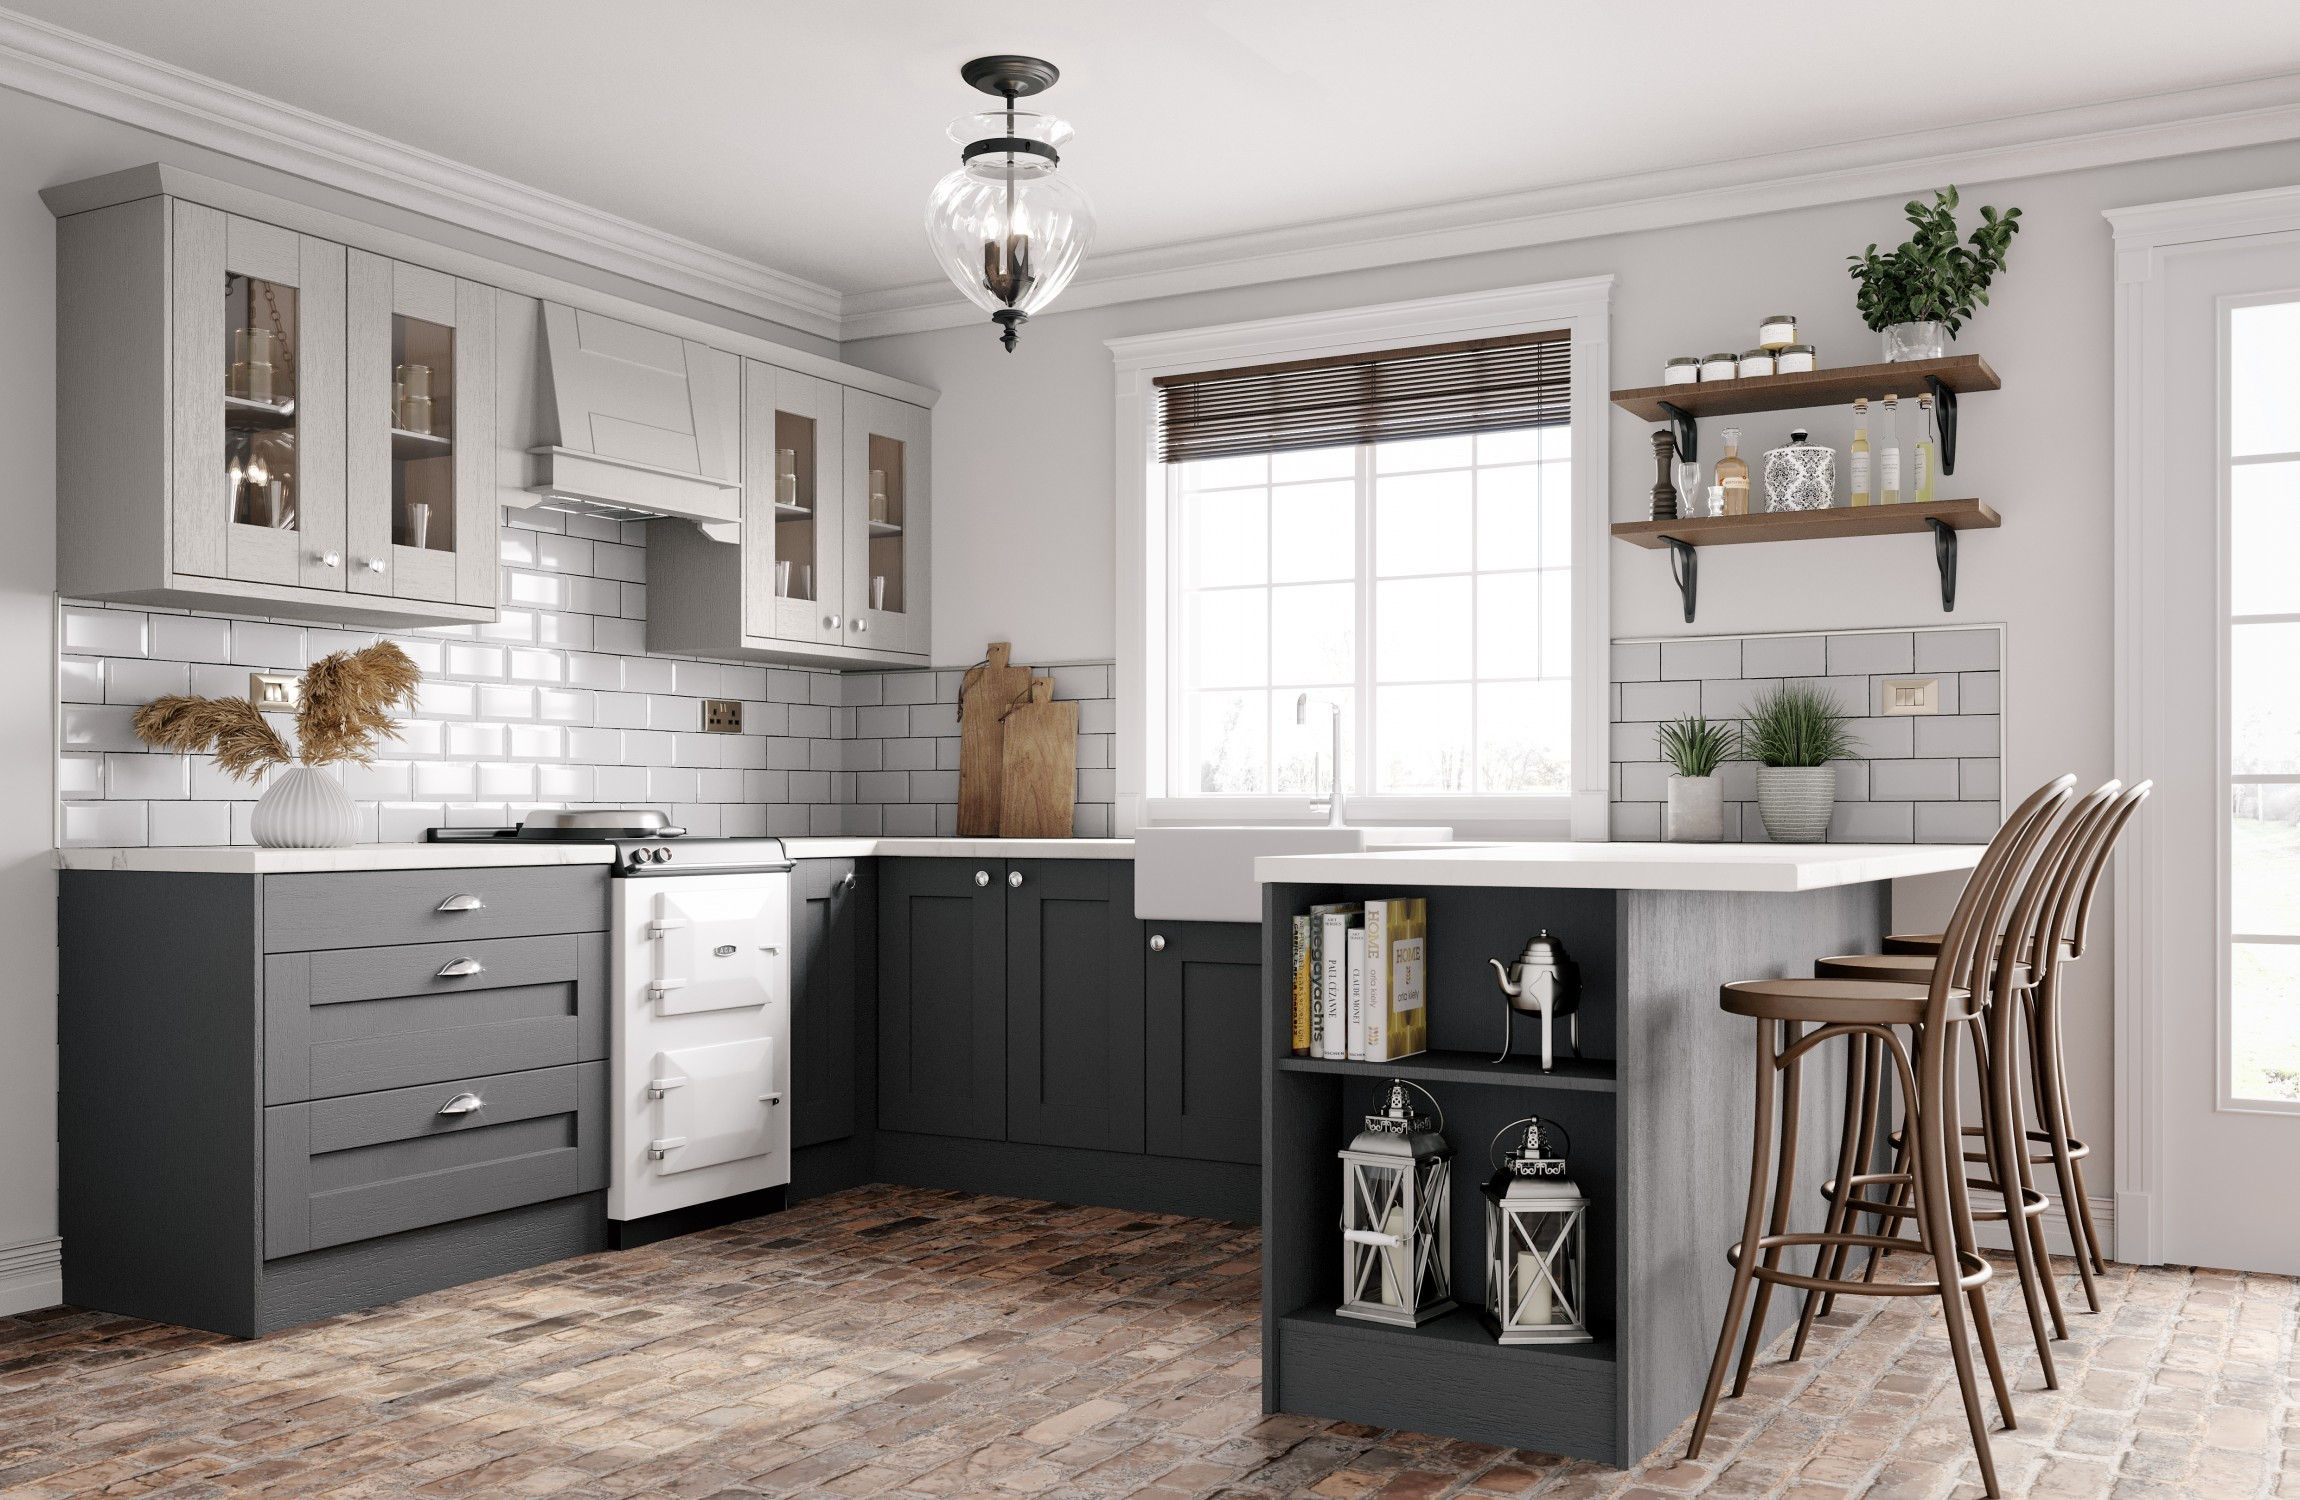 Give Everything A Home 7 Expert Kitchen Design Tips To Make Cooking A Delight